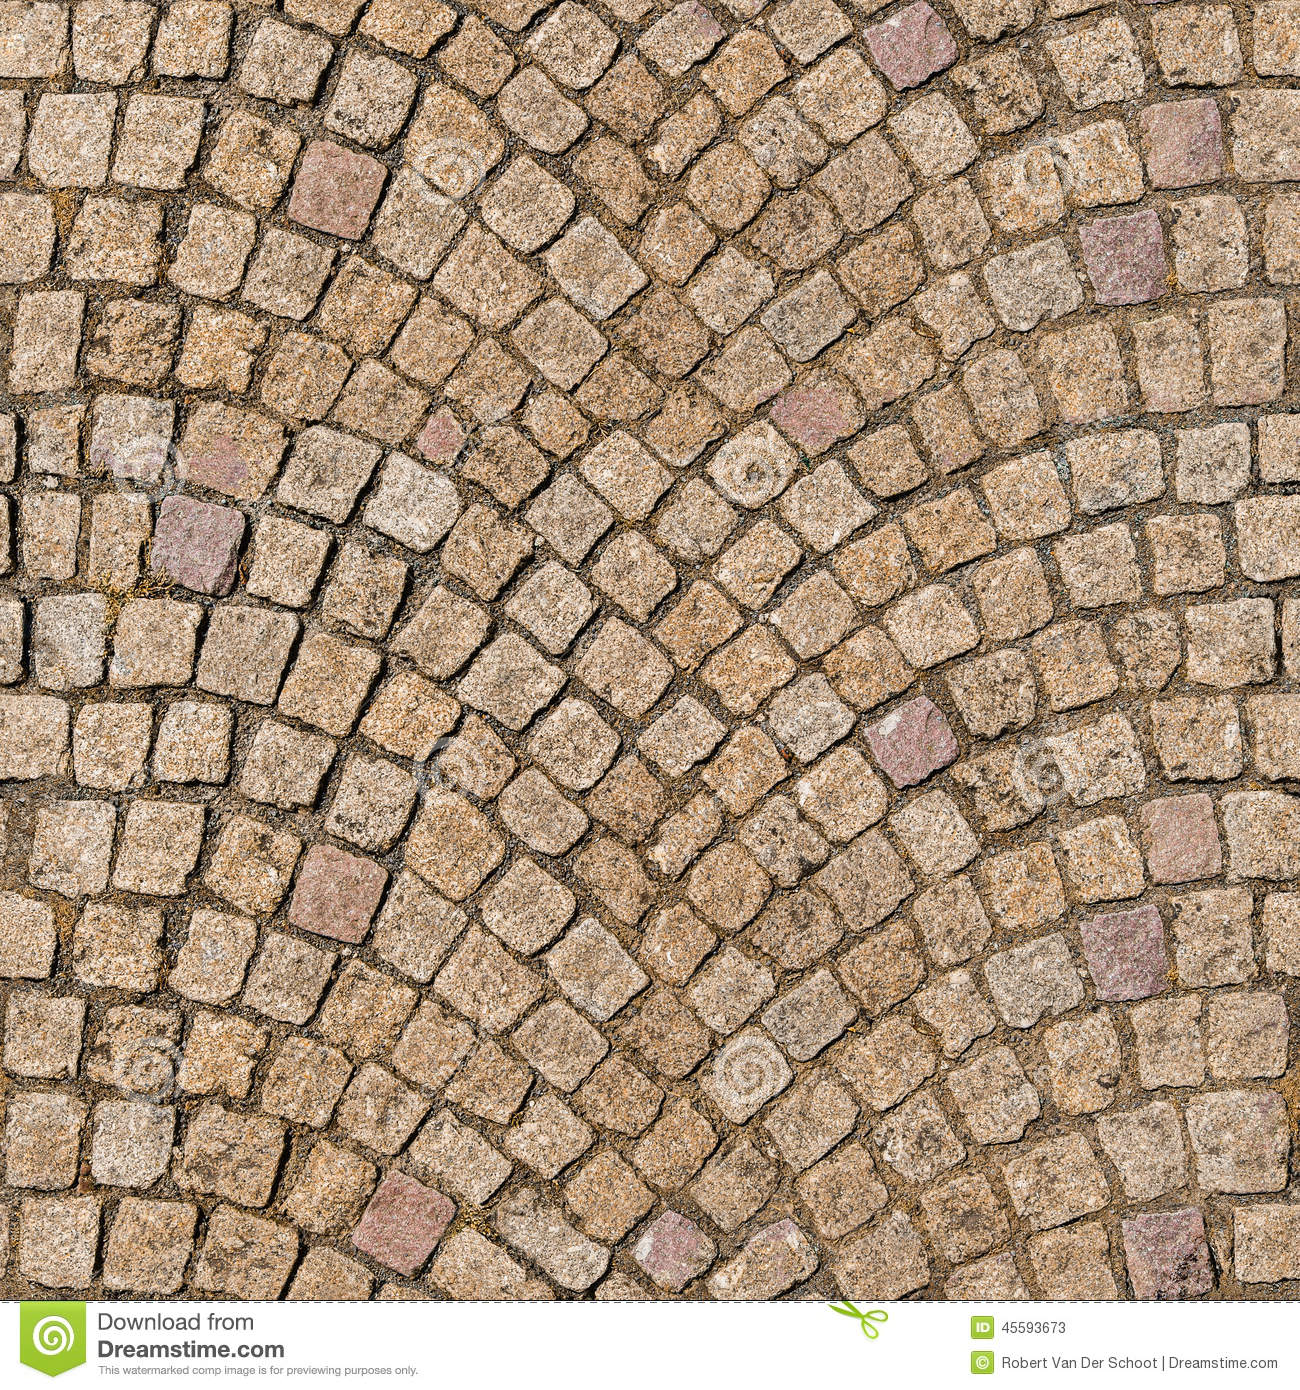 HQ seamless  tileable texture decorative cobblestone pavement. HQ Seamless  Tileable Texture Decorative Cobblestone Pavement